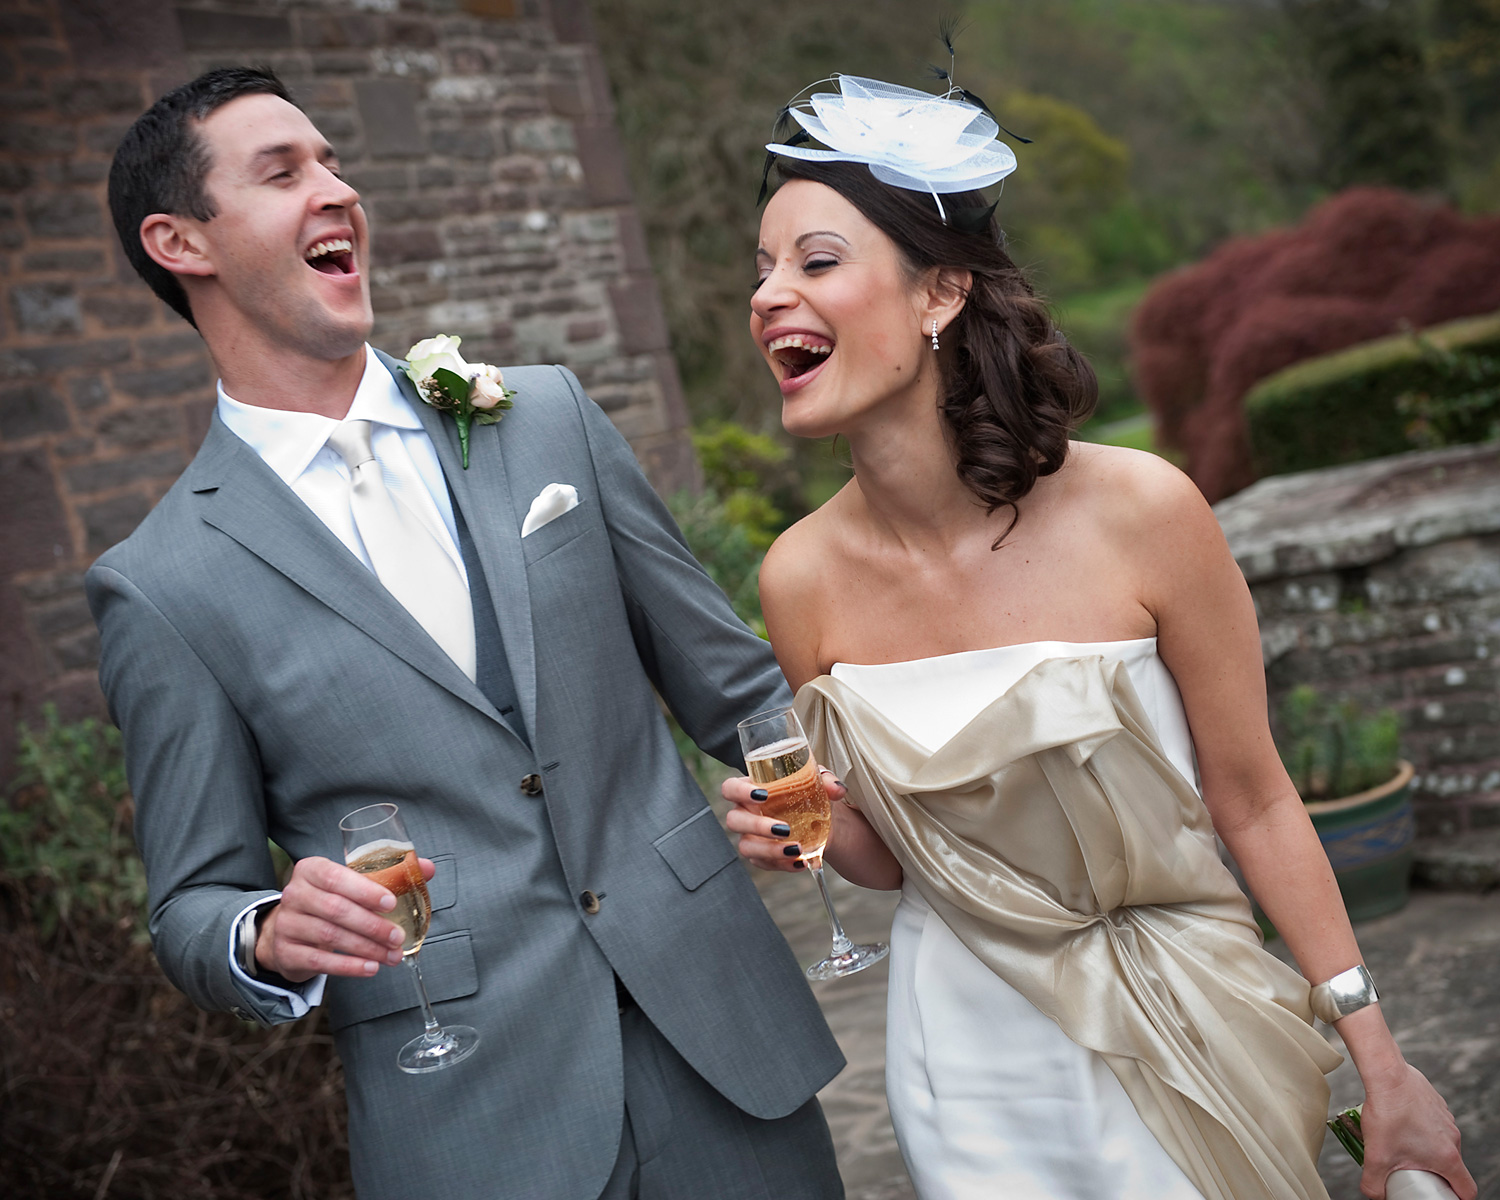 laughing-bride-groom-gliffaes-hotel-crickhowell-wedding-photography.